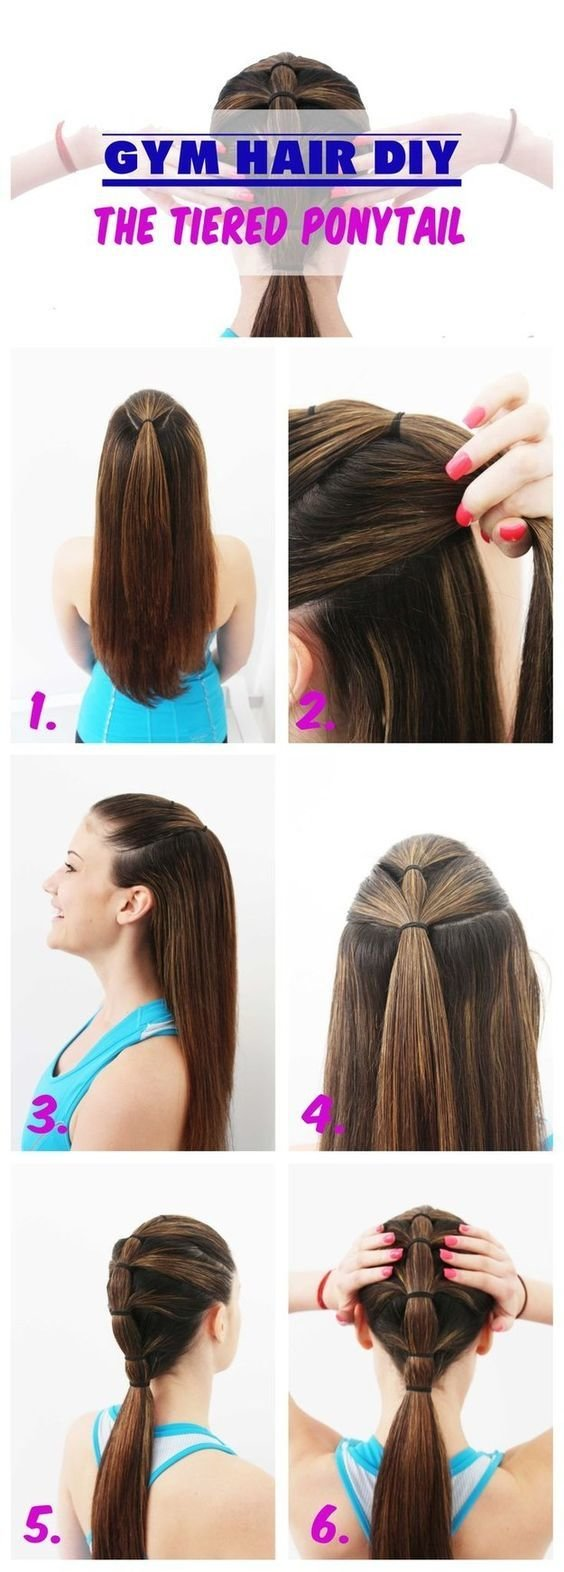 New 22 Quick And Easy Back To School Hairstyle Tutorials Ideas With Pictures